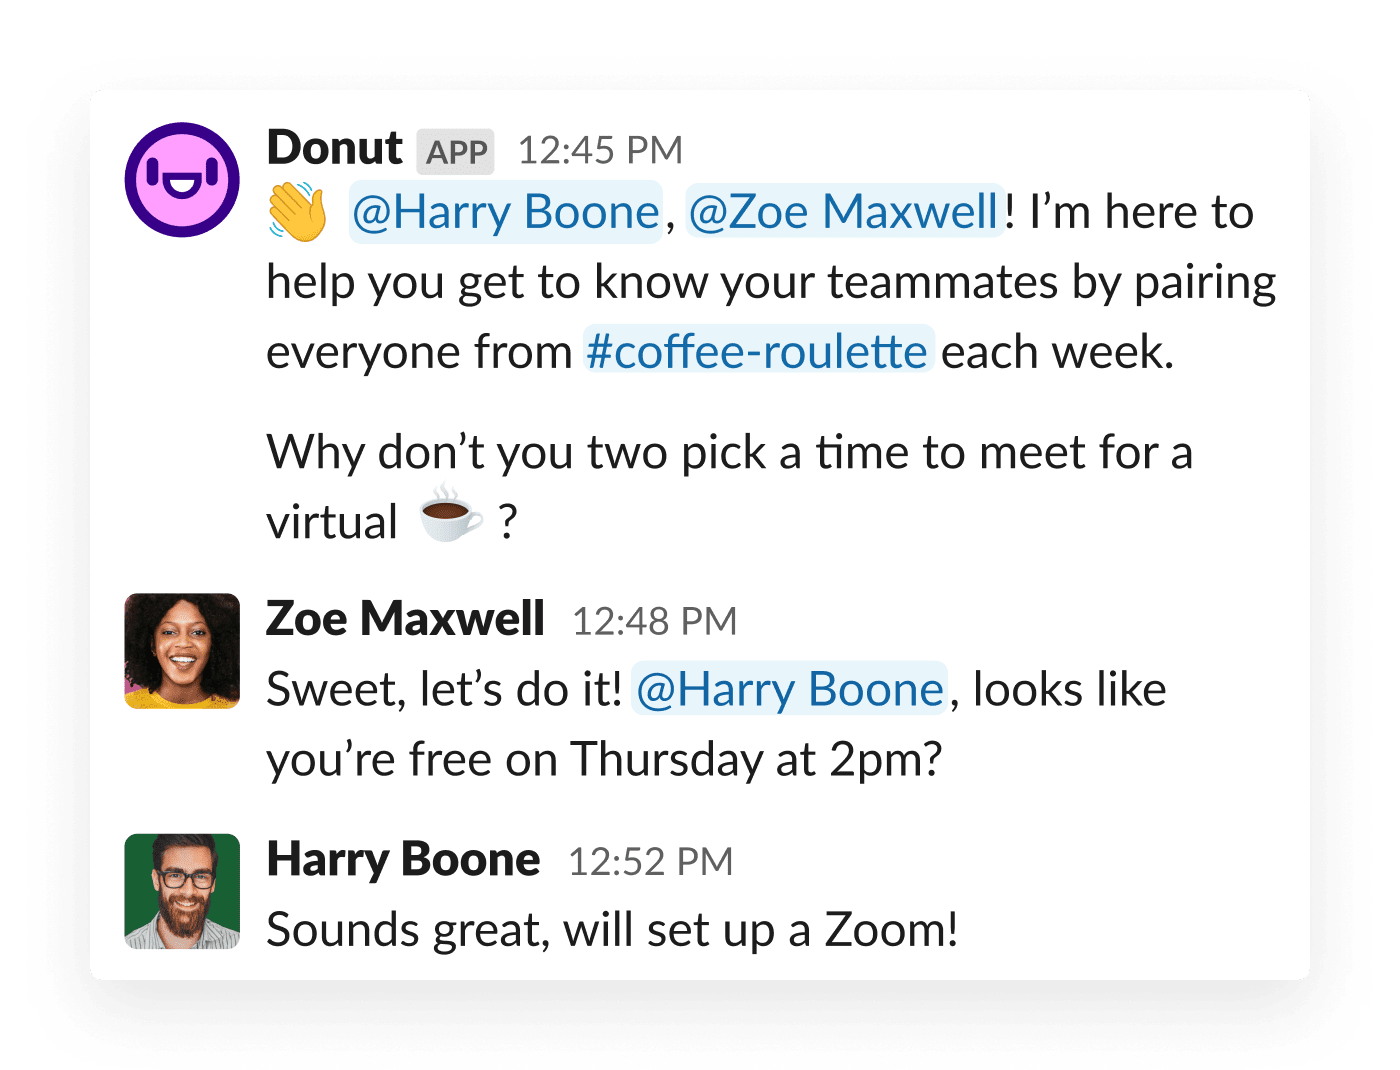 Two coworkers are prompted to meet via the Donut app for Slack